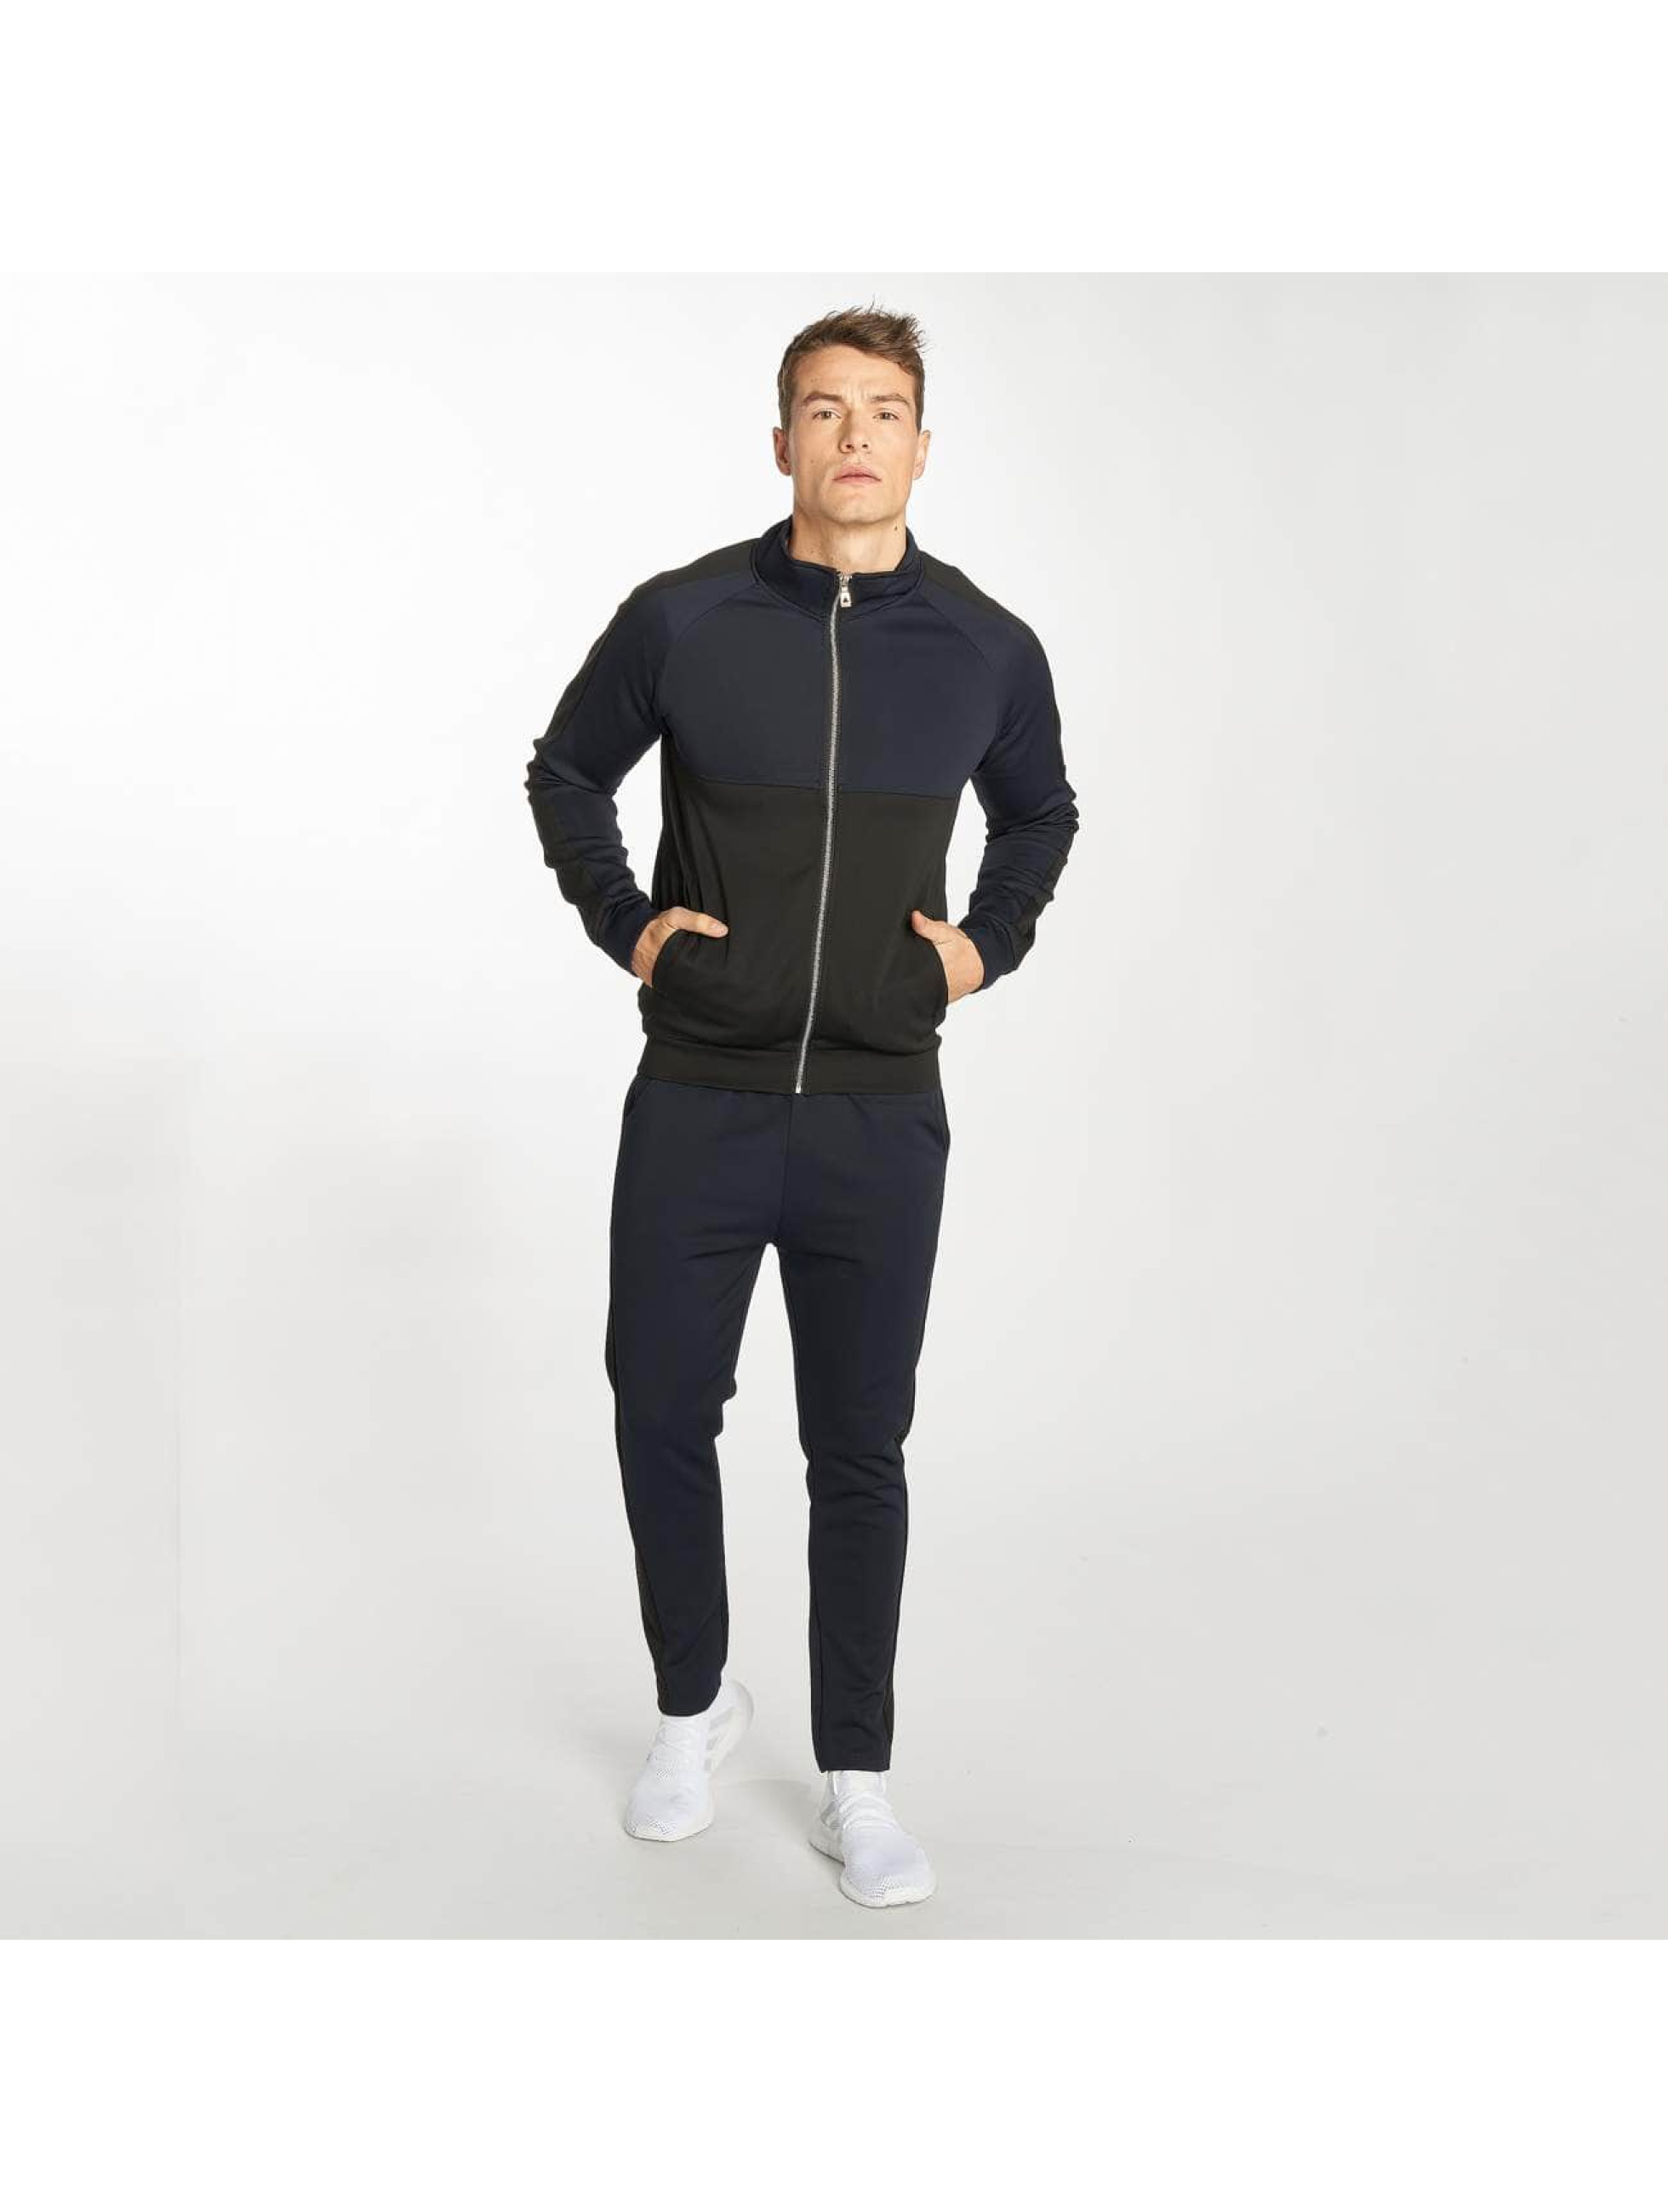 Zayne Paris Joggingsæt Two-Tone blå